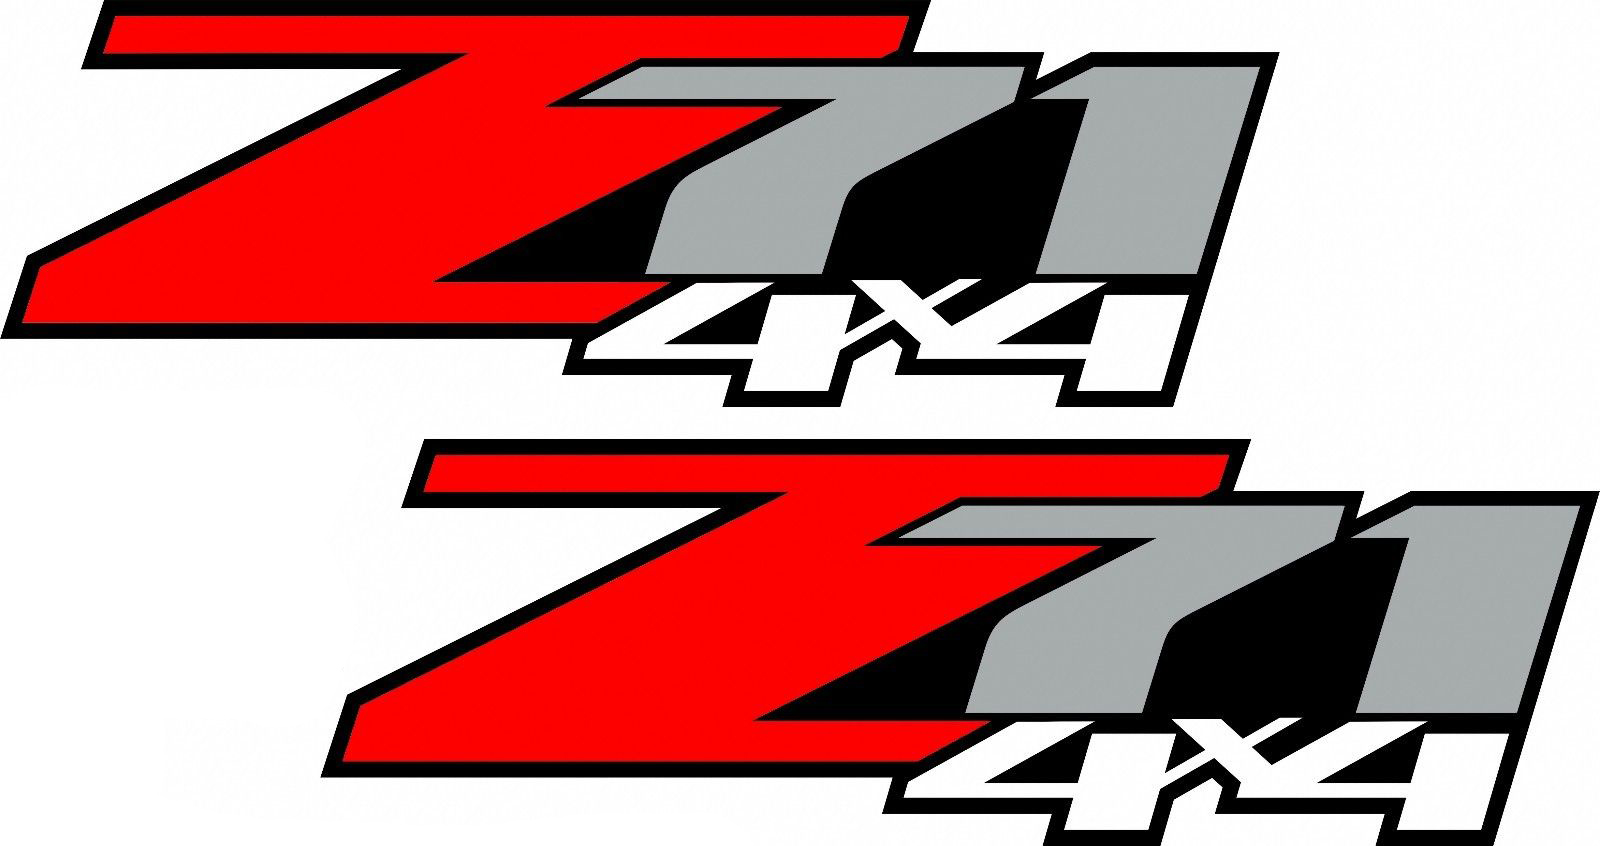 2 chevy z71 off road 4x4 truck decal sticker x2